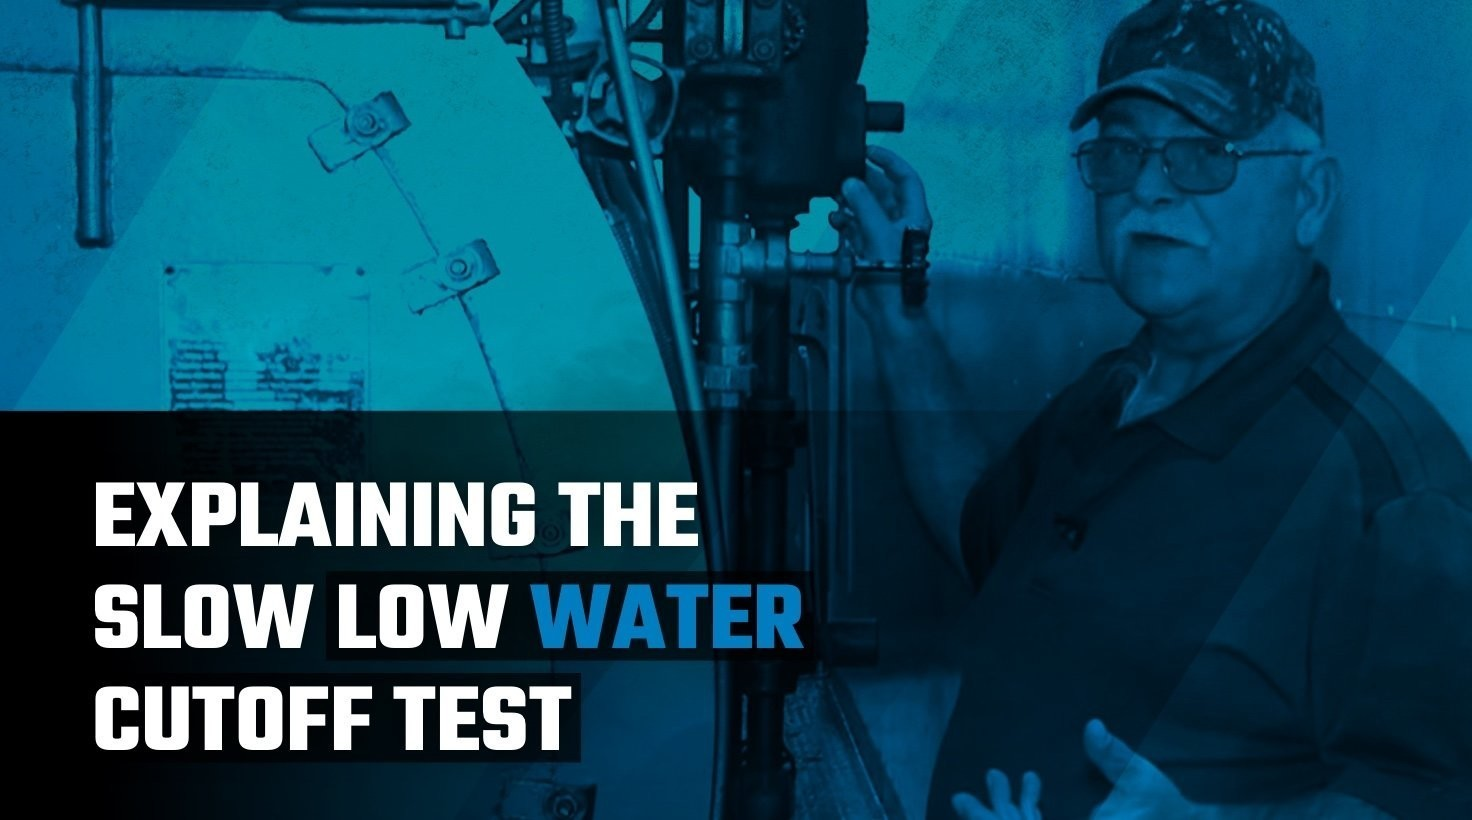 Explaining the Slow Low Water Cutoff Test